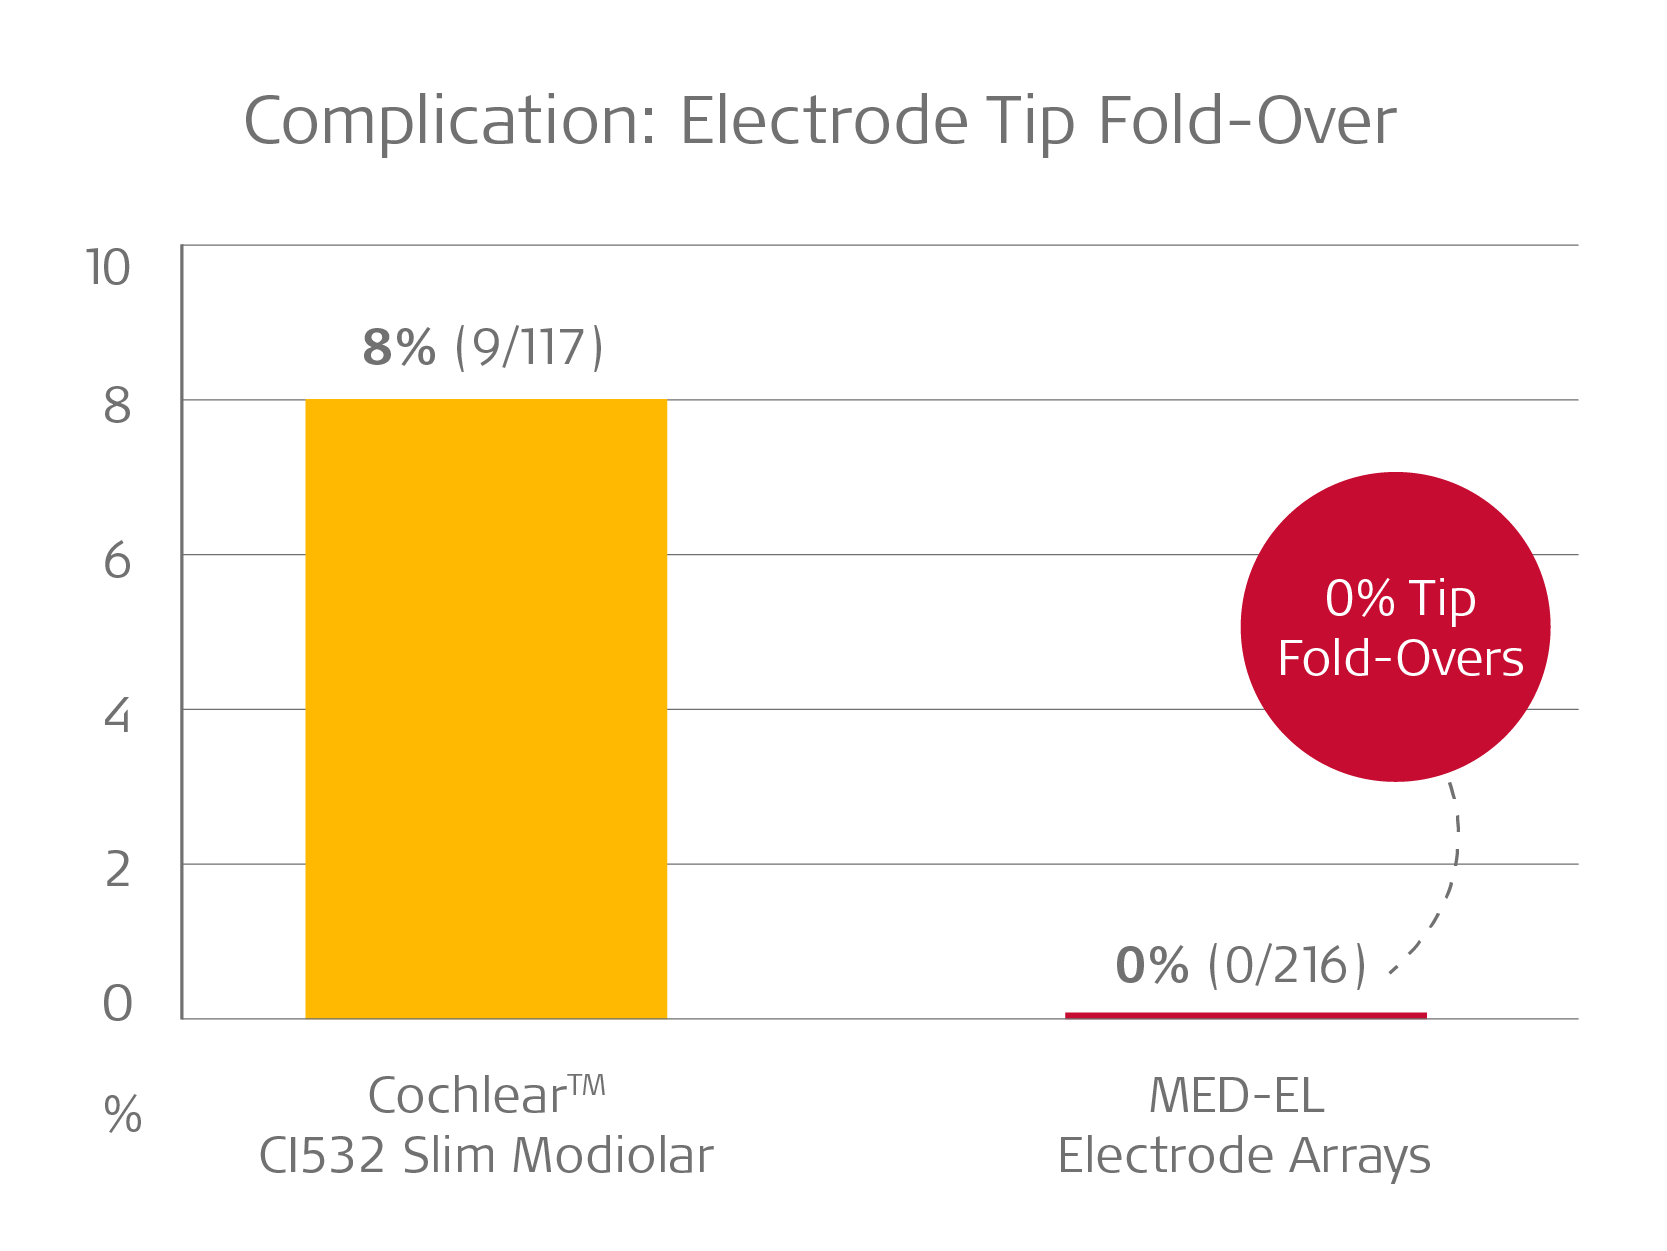 Tip fold-over rate perimodiolar cochlear implant electrode array